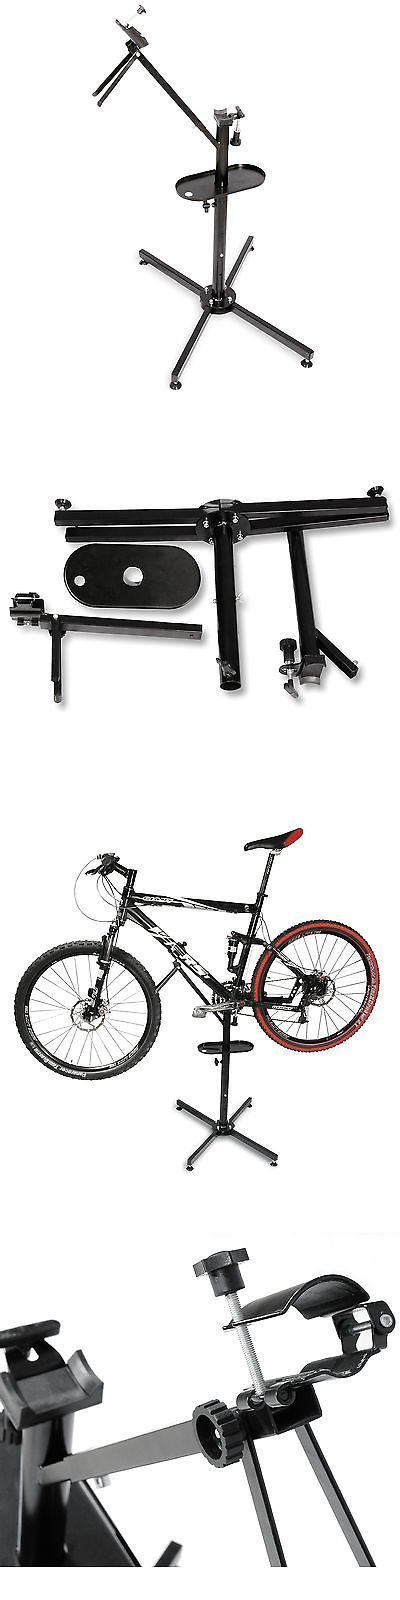 Other Bike Maintenance and Tools 177848: Rad Cycle Pro Mechanic Bicycle Repair Stand Work Like A Pro Mechanic At Home -> BUY IT NOW ONLY: $35.97 on eBay!